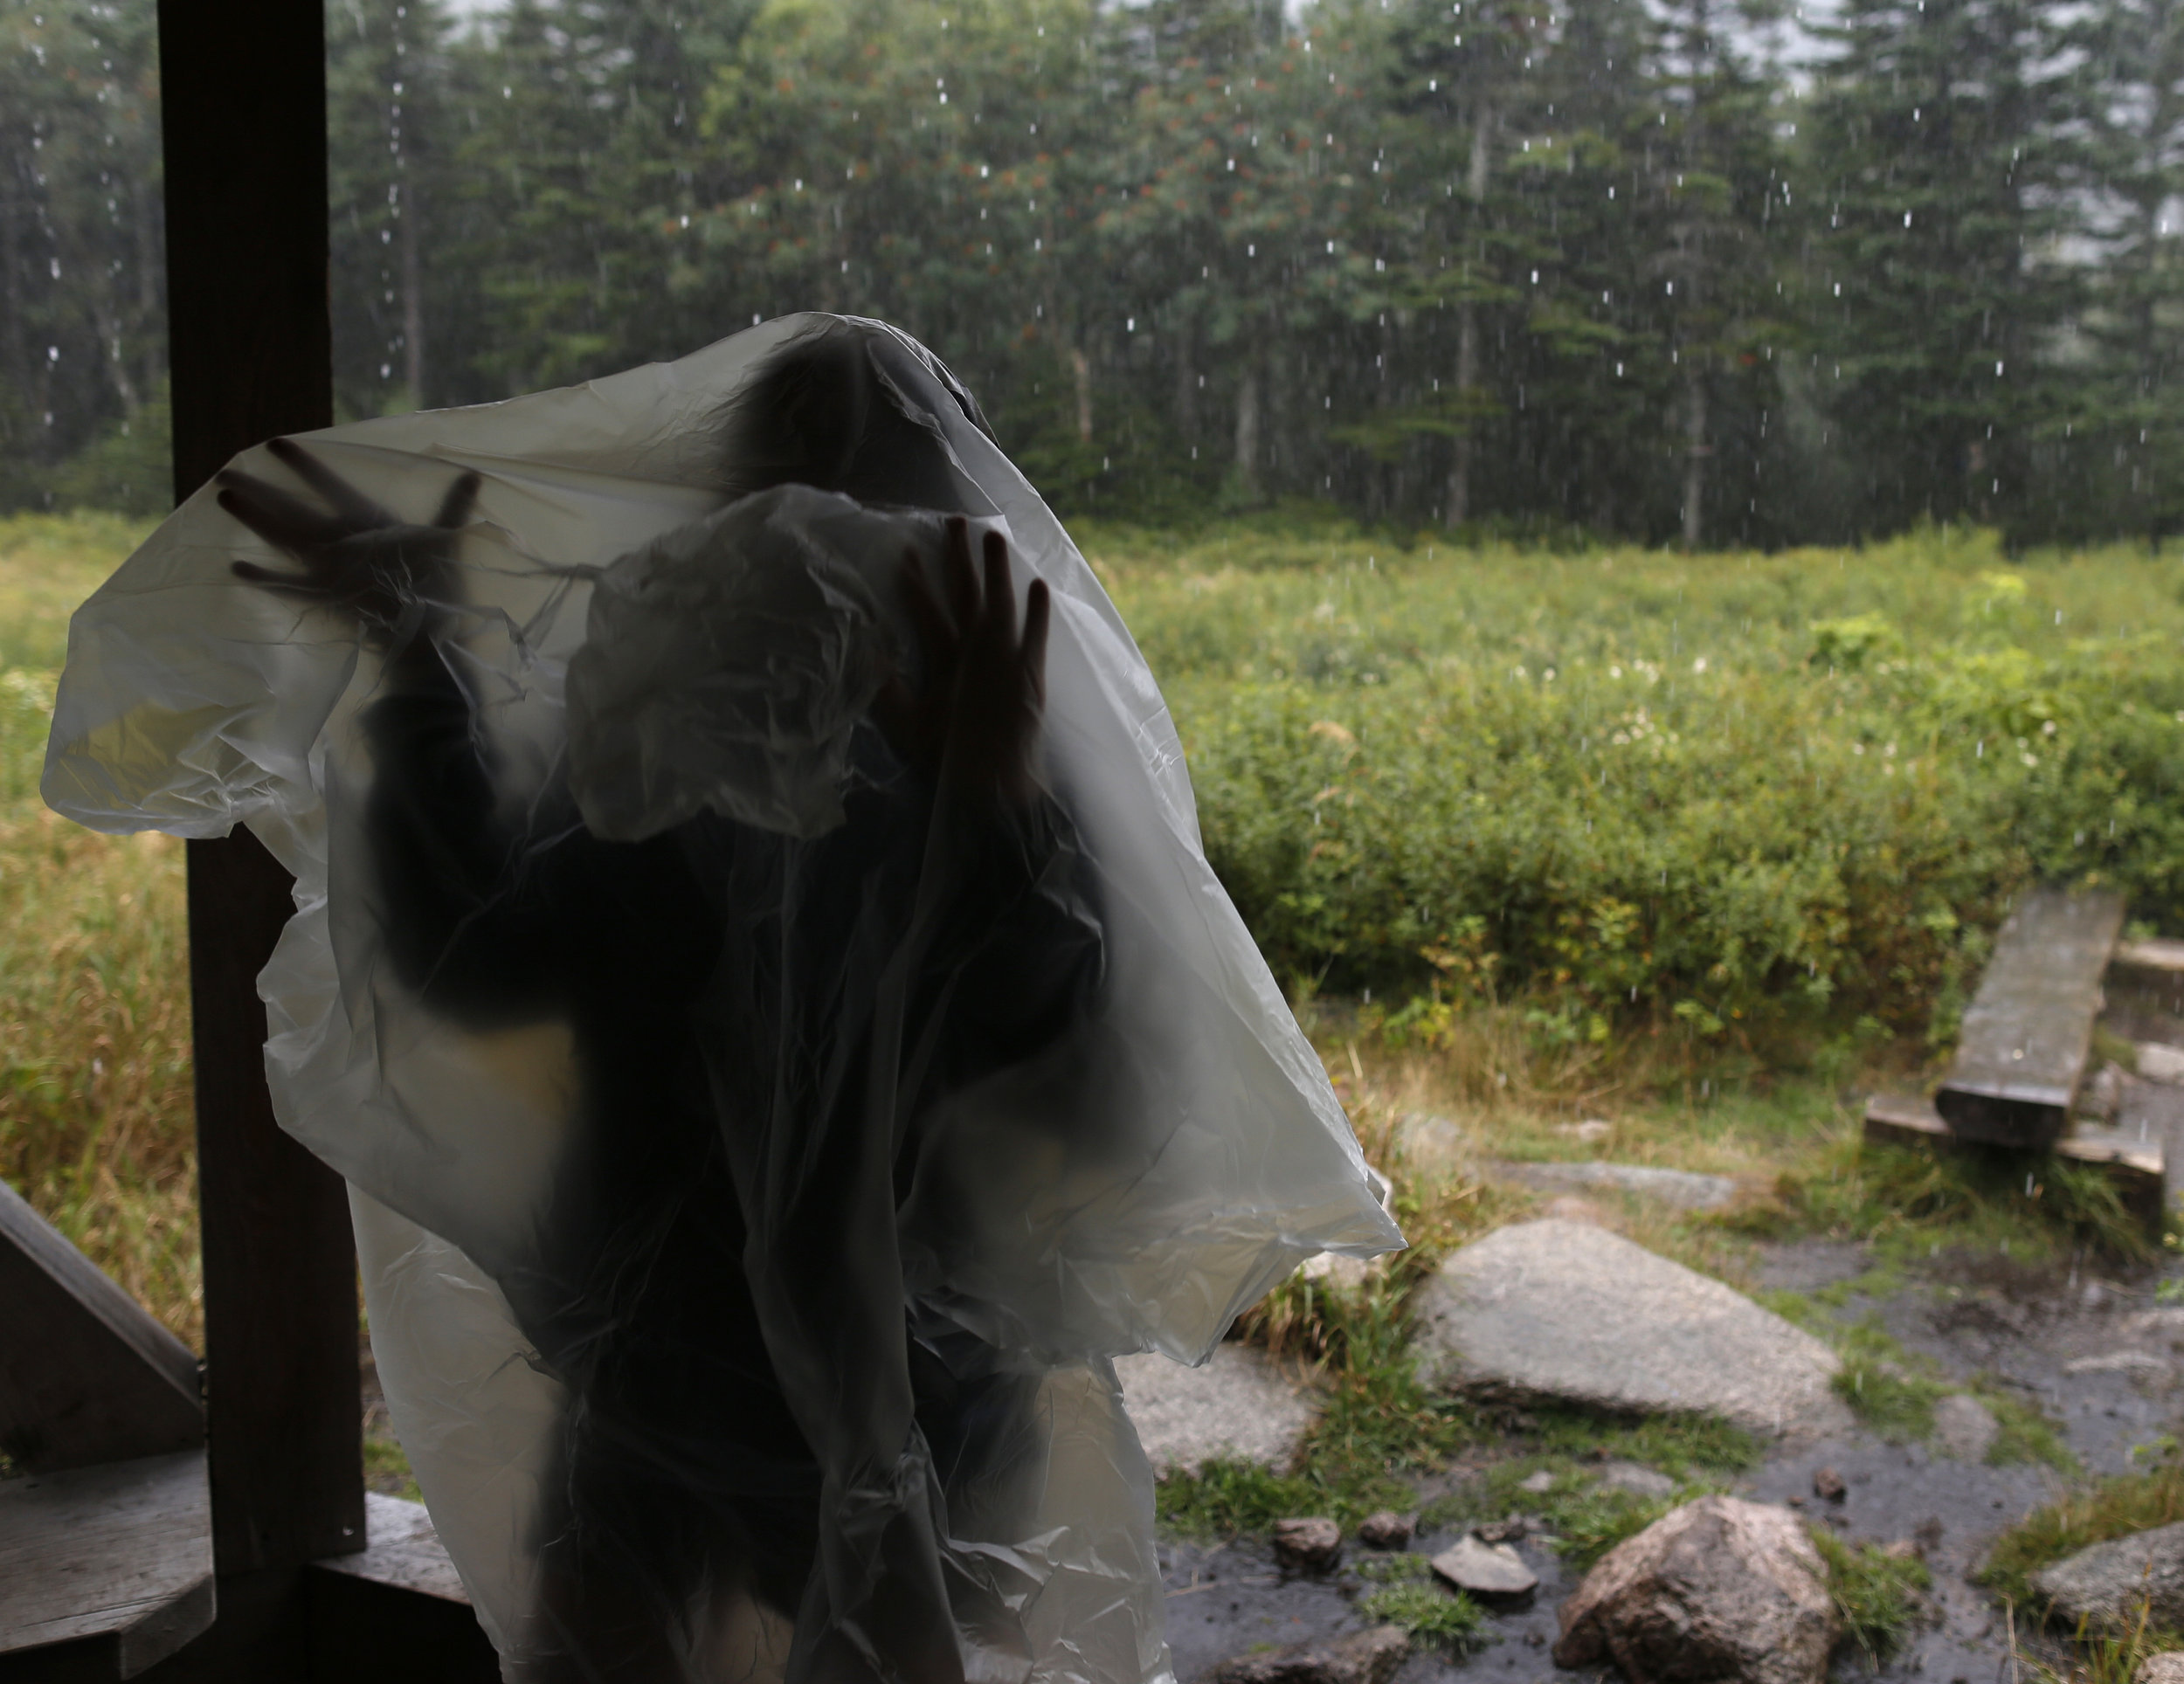 Monata dons a rain poncho at a shelter partway back to the campsite. Lankin had turned the group around near the summit to avoid getting caught in a storm above the tree line.